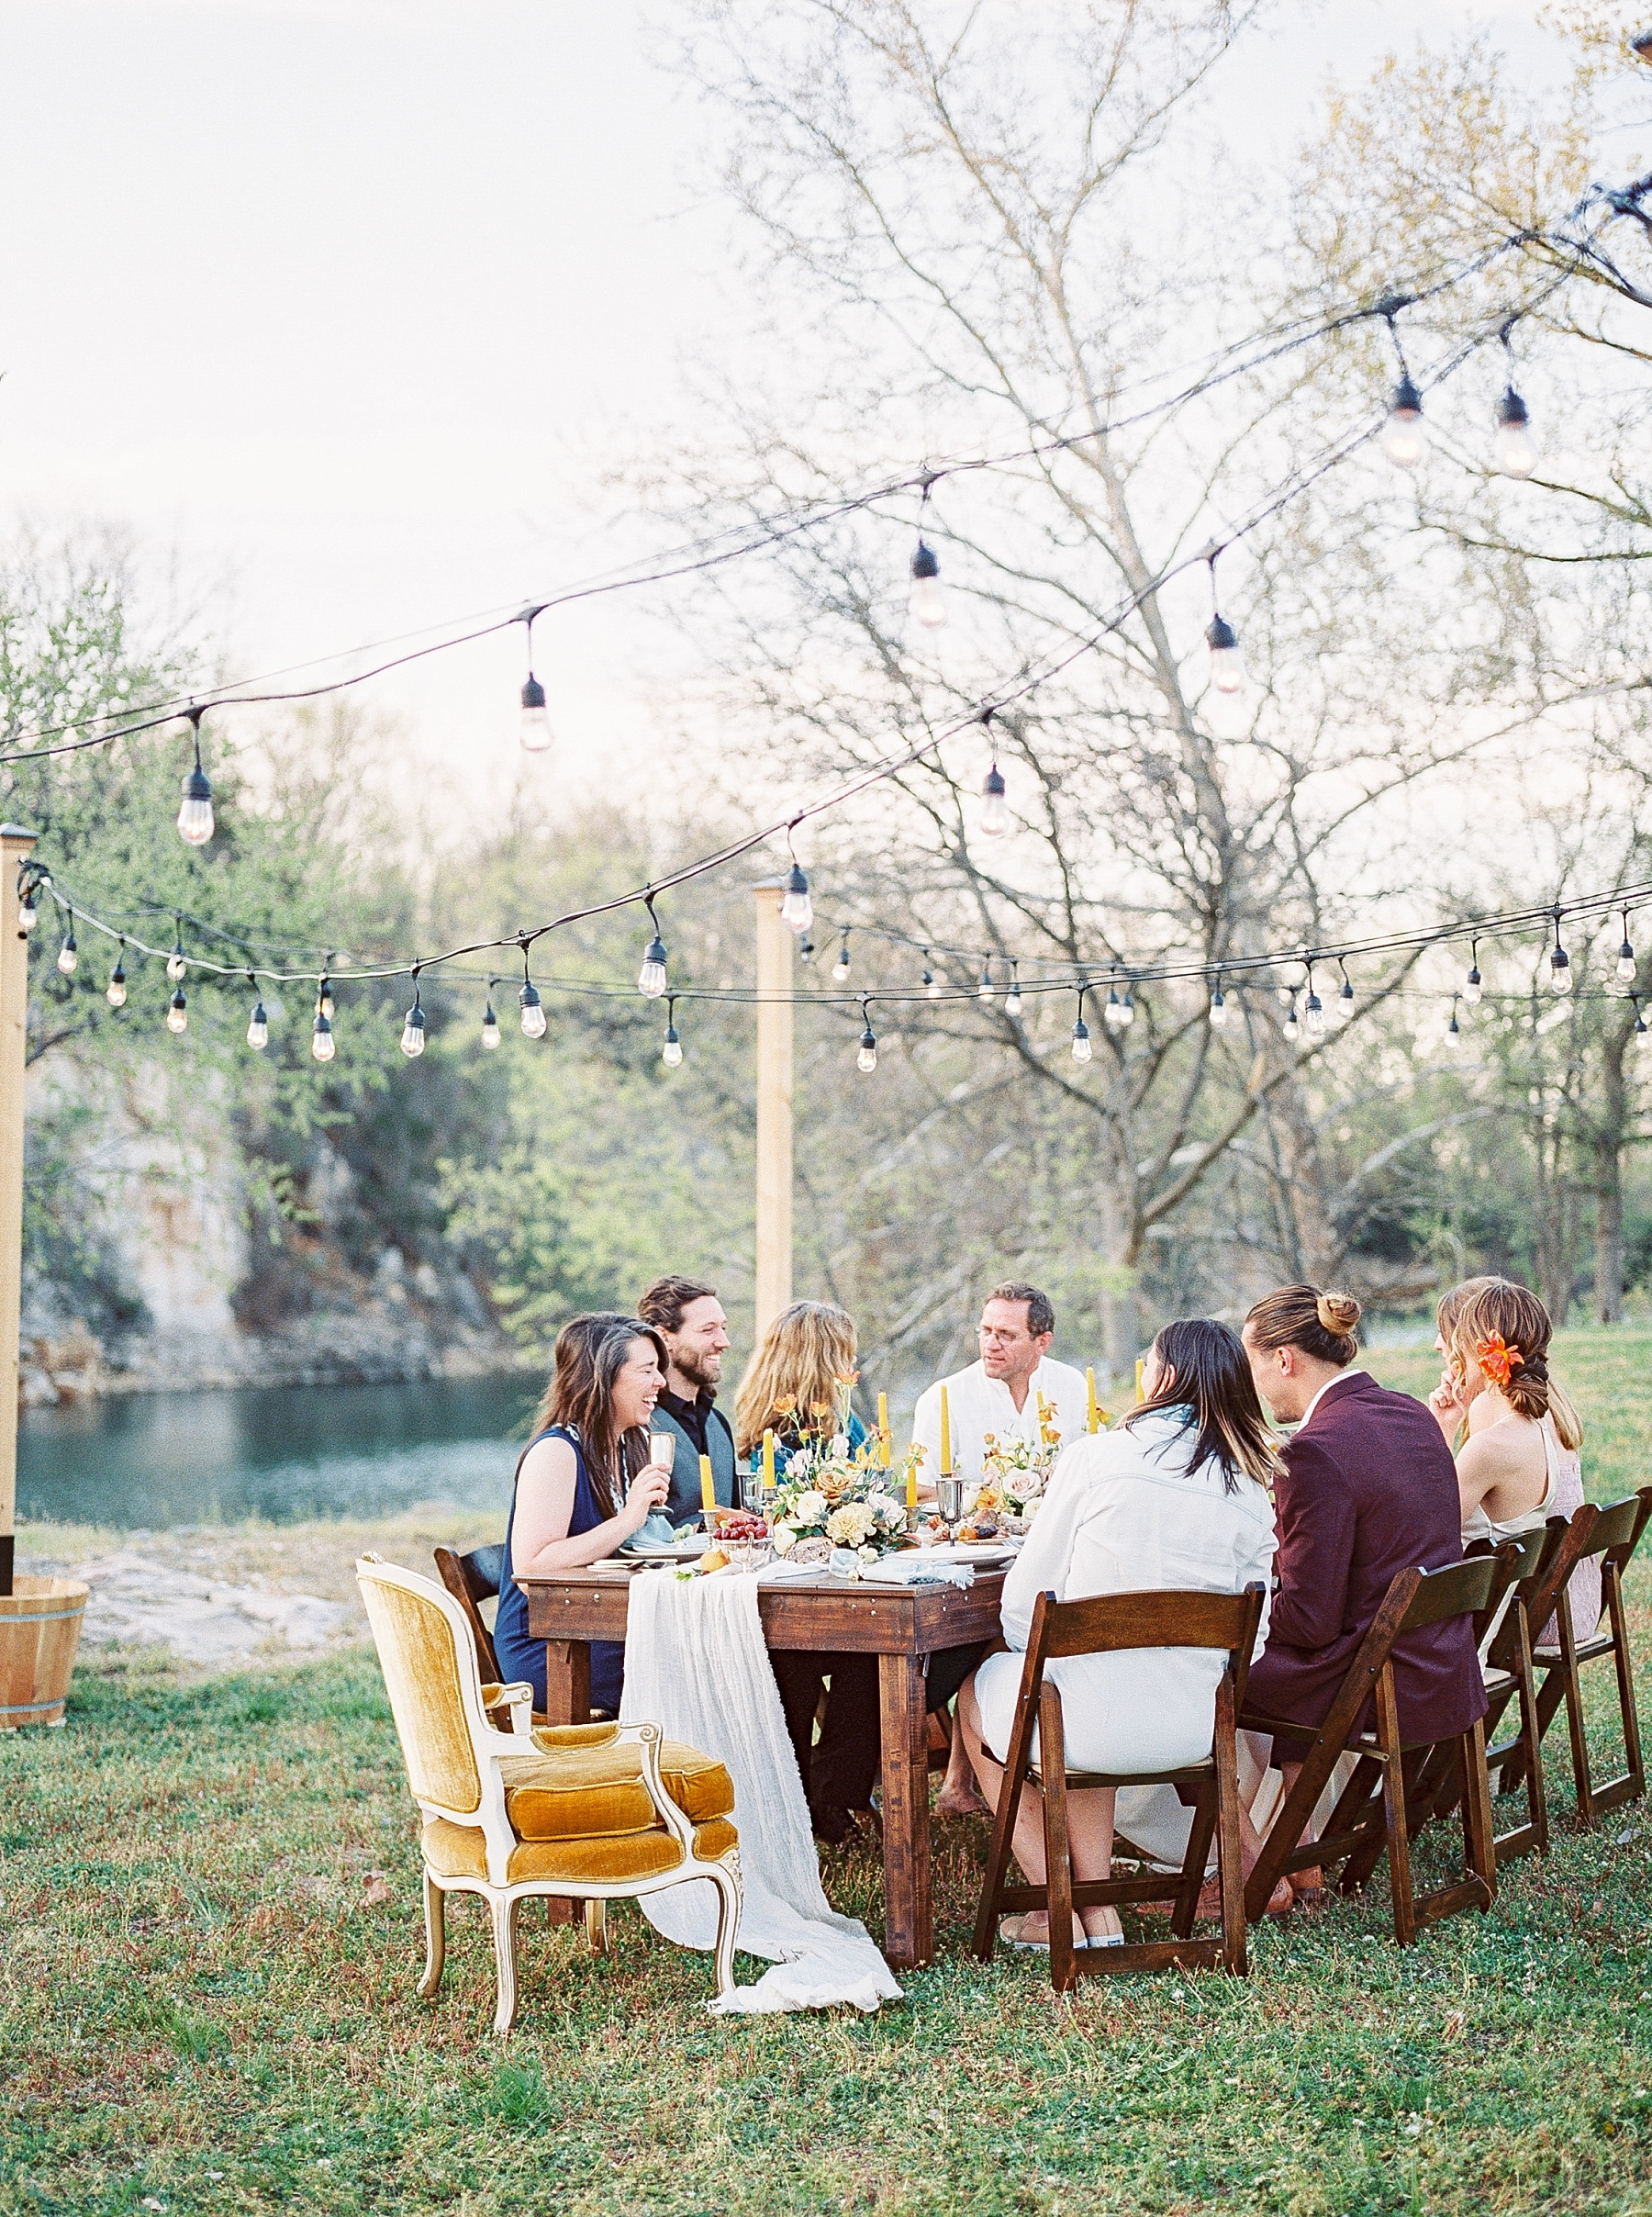 Intimate Spanish and French Inspired Destination Wedding with Lakeside Dinner Party at Dusk at Wildcliff by Kelsi Kliethermes Photography Best Missouri and Maui Wedding Photographer_0083.jpg